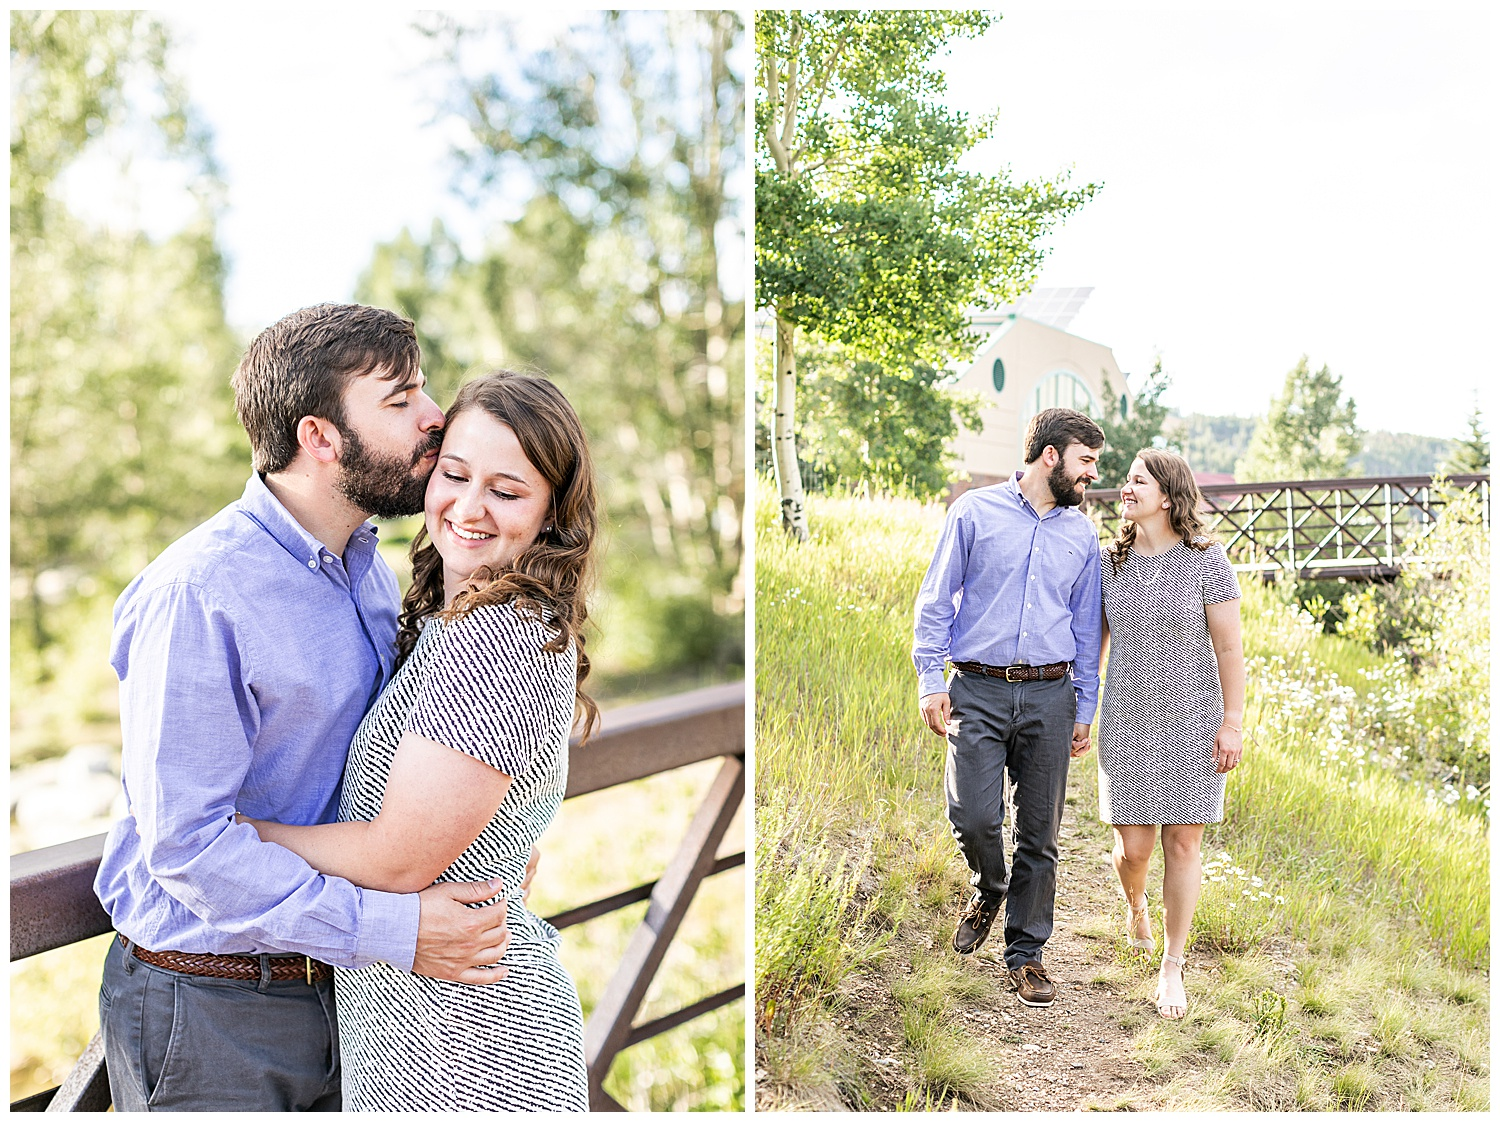 Molly + Ryan Breckenridge Destination Engagement Session Living Radiant Photography_0007.jpg